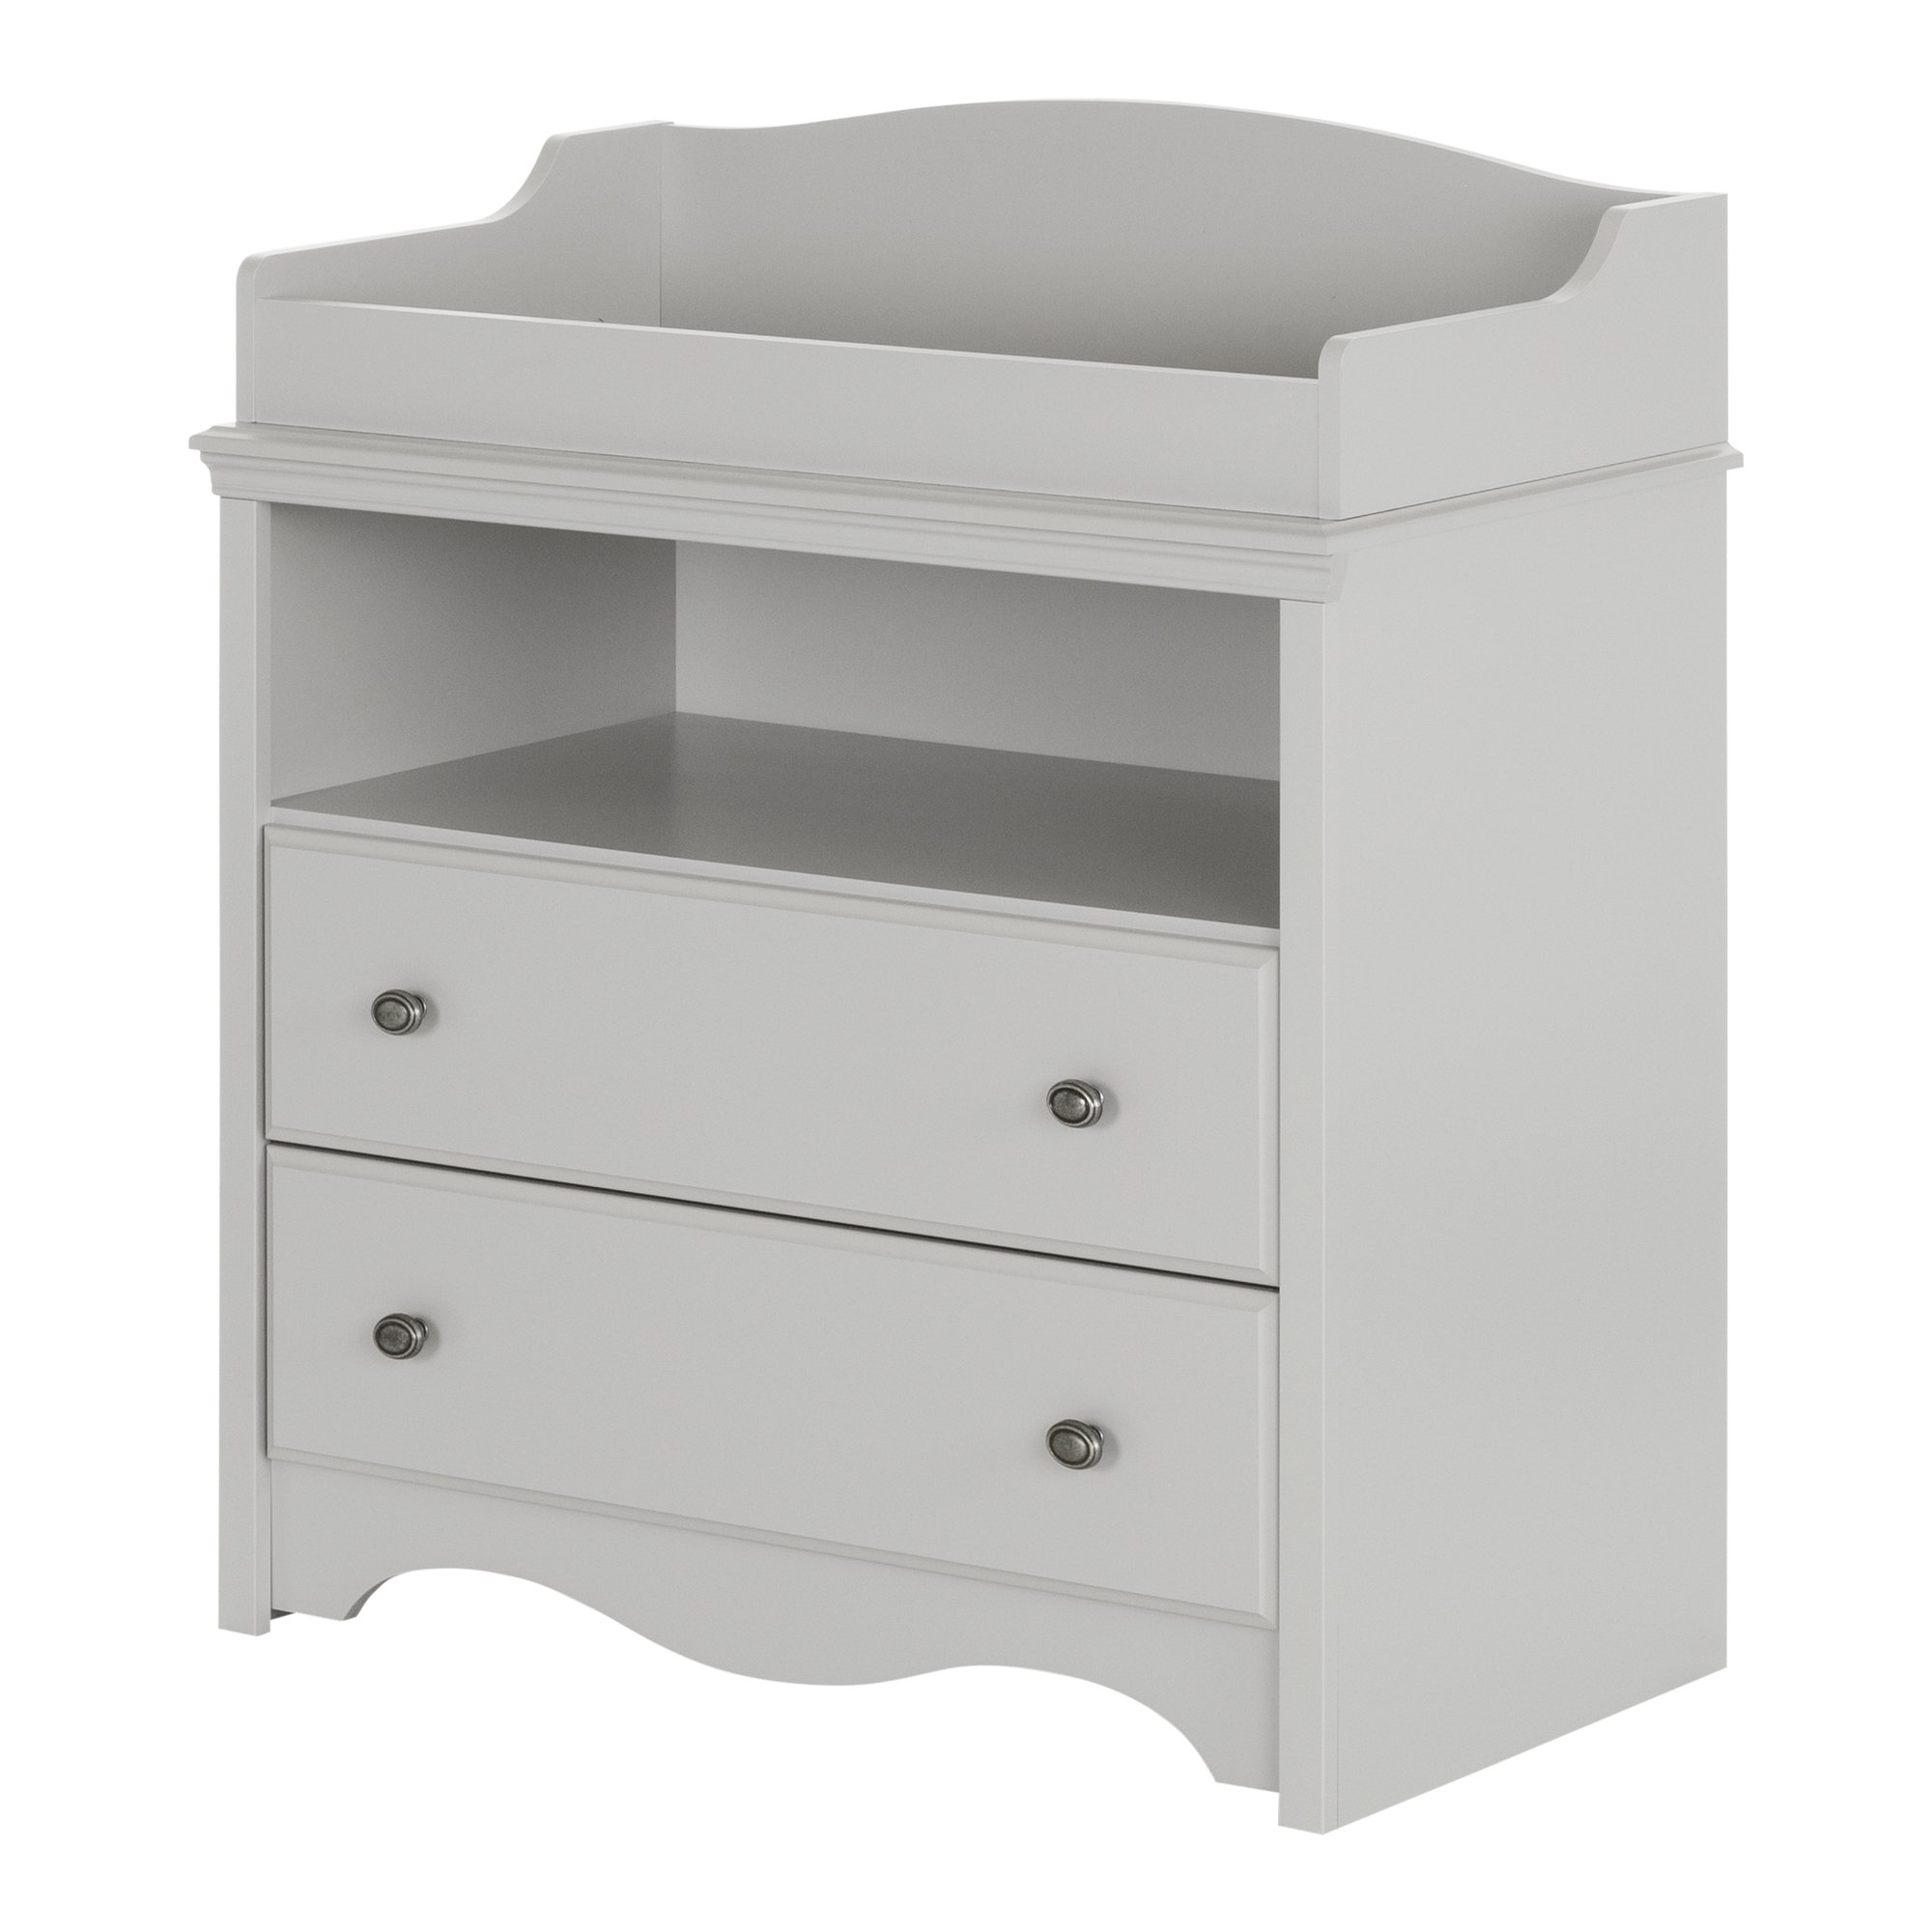 South Shore Angel Changing Table with Drawers, Soft Gray by South Shore